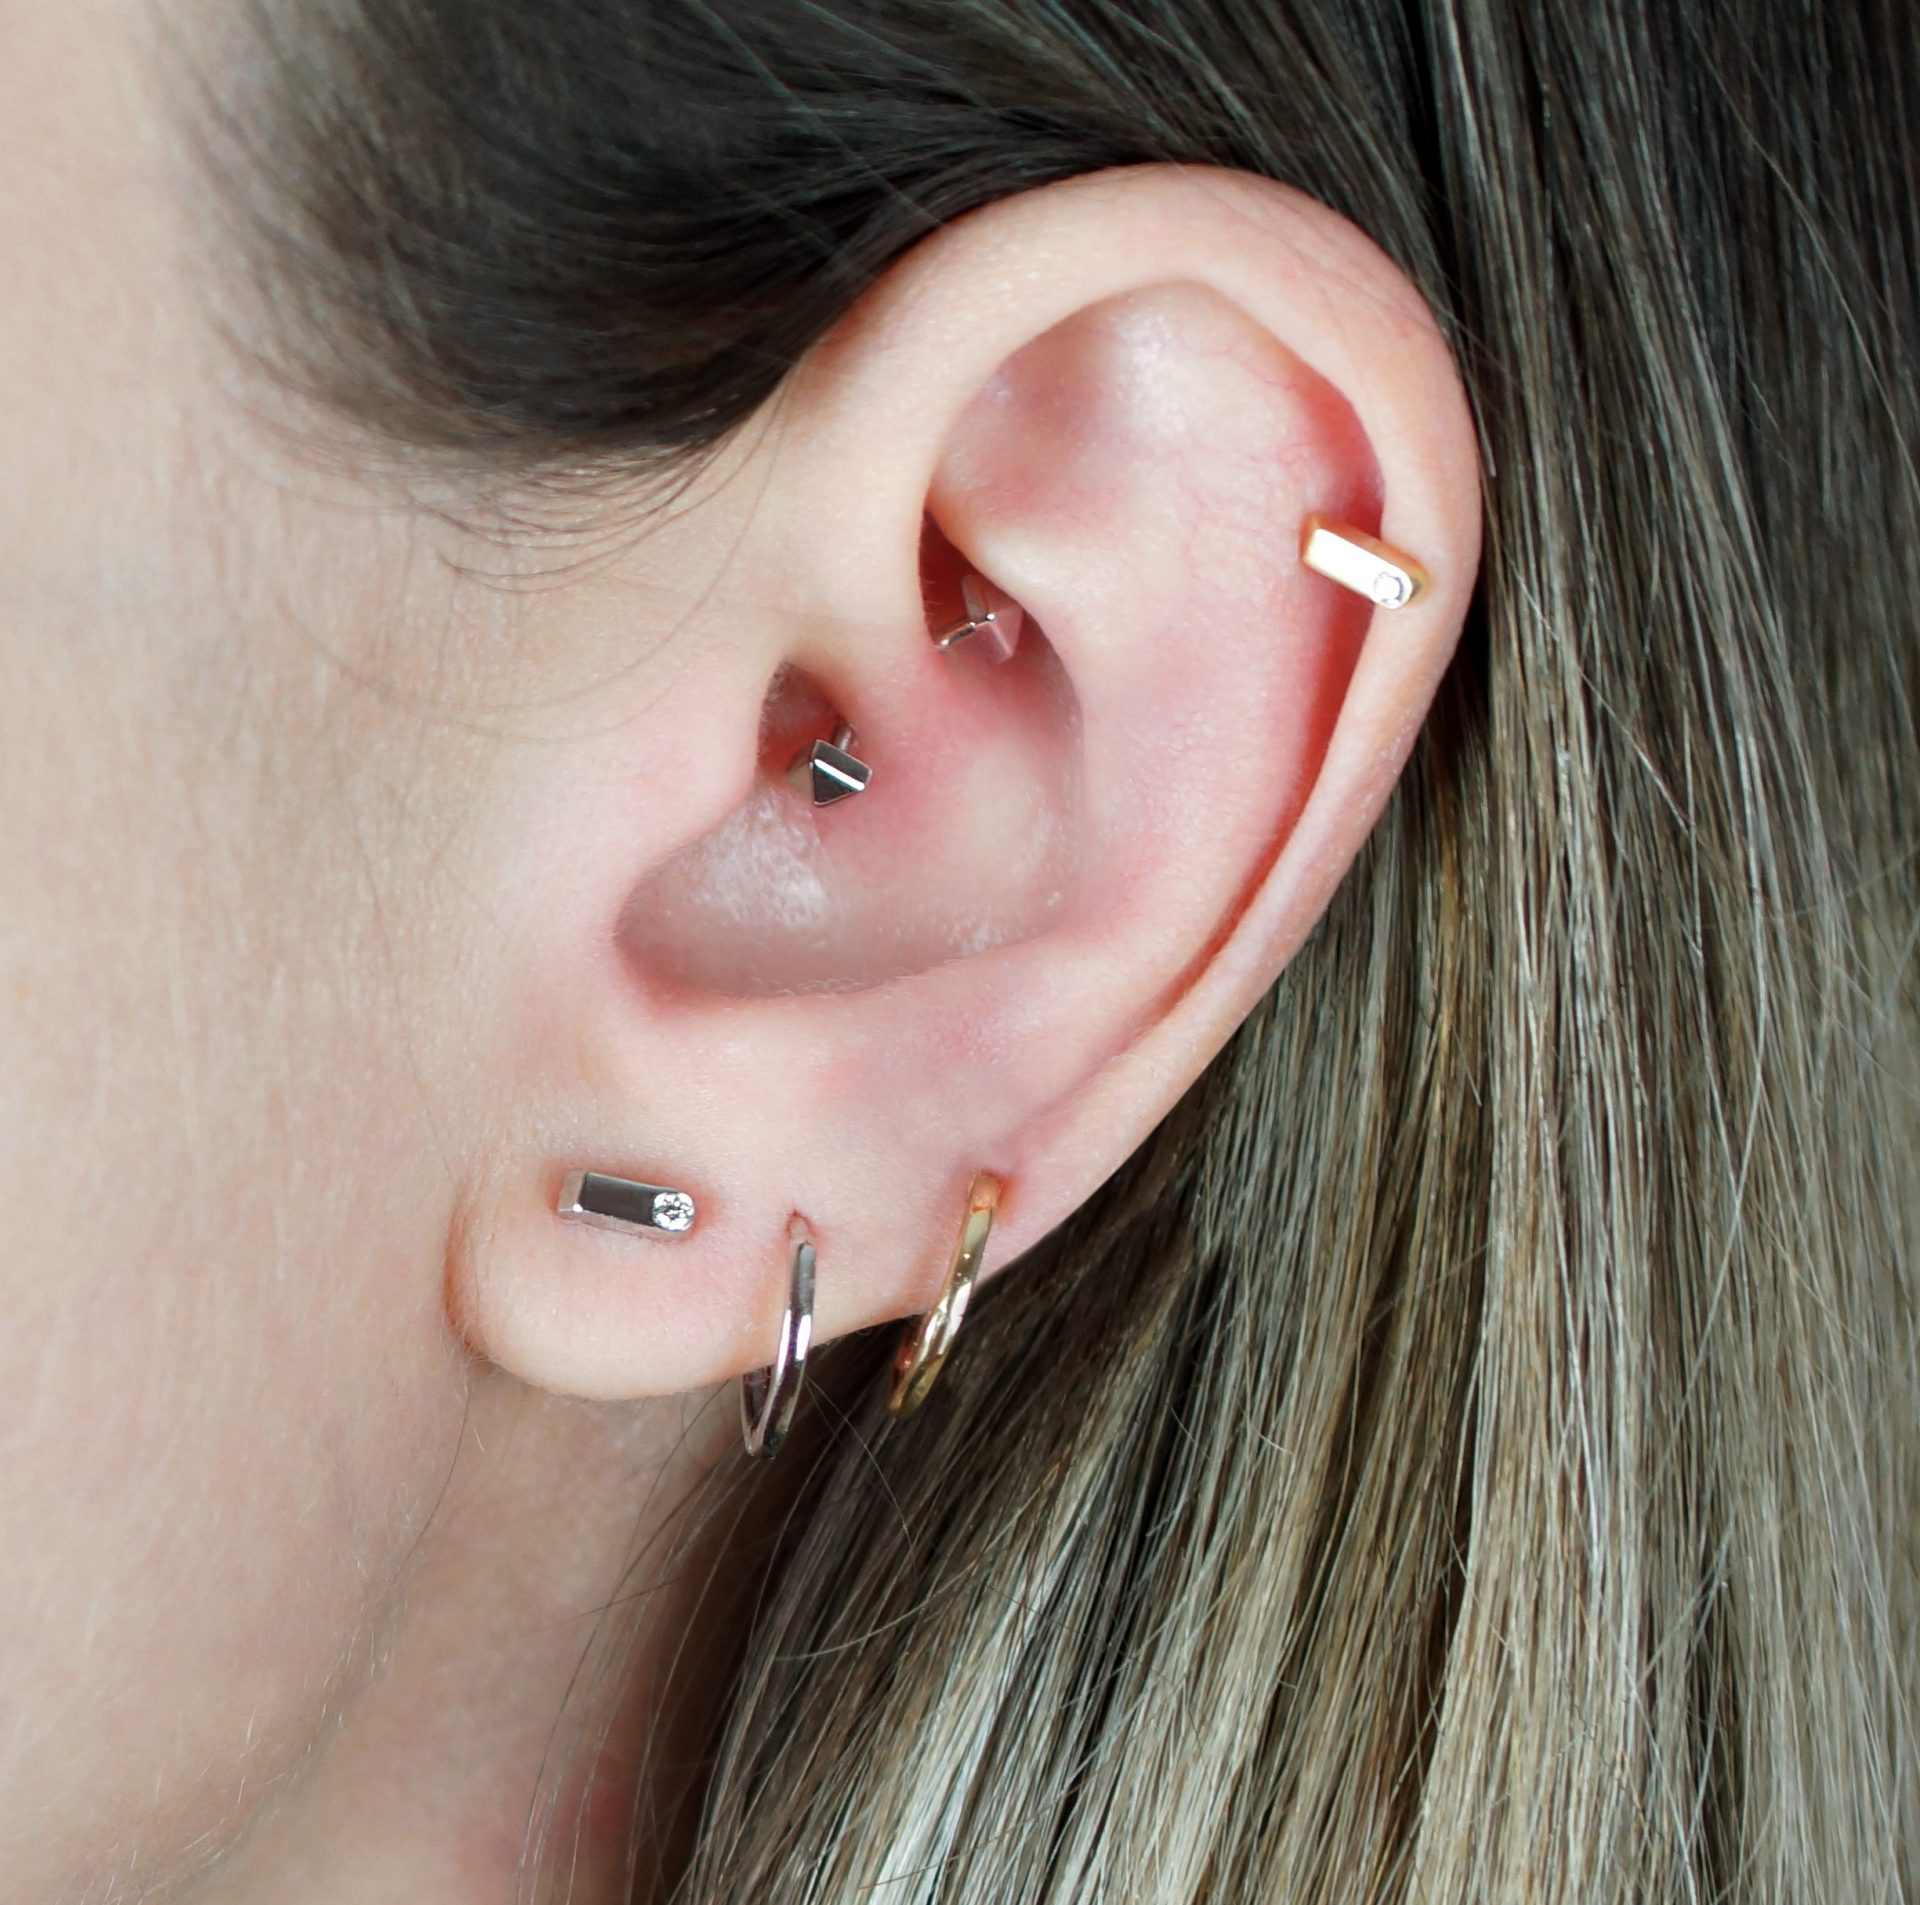 Daith piercings with fine jewelry are increasingly popular. Perfect for creative ear piercing combinations.